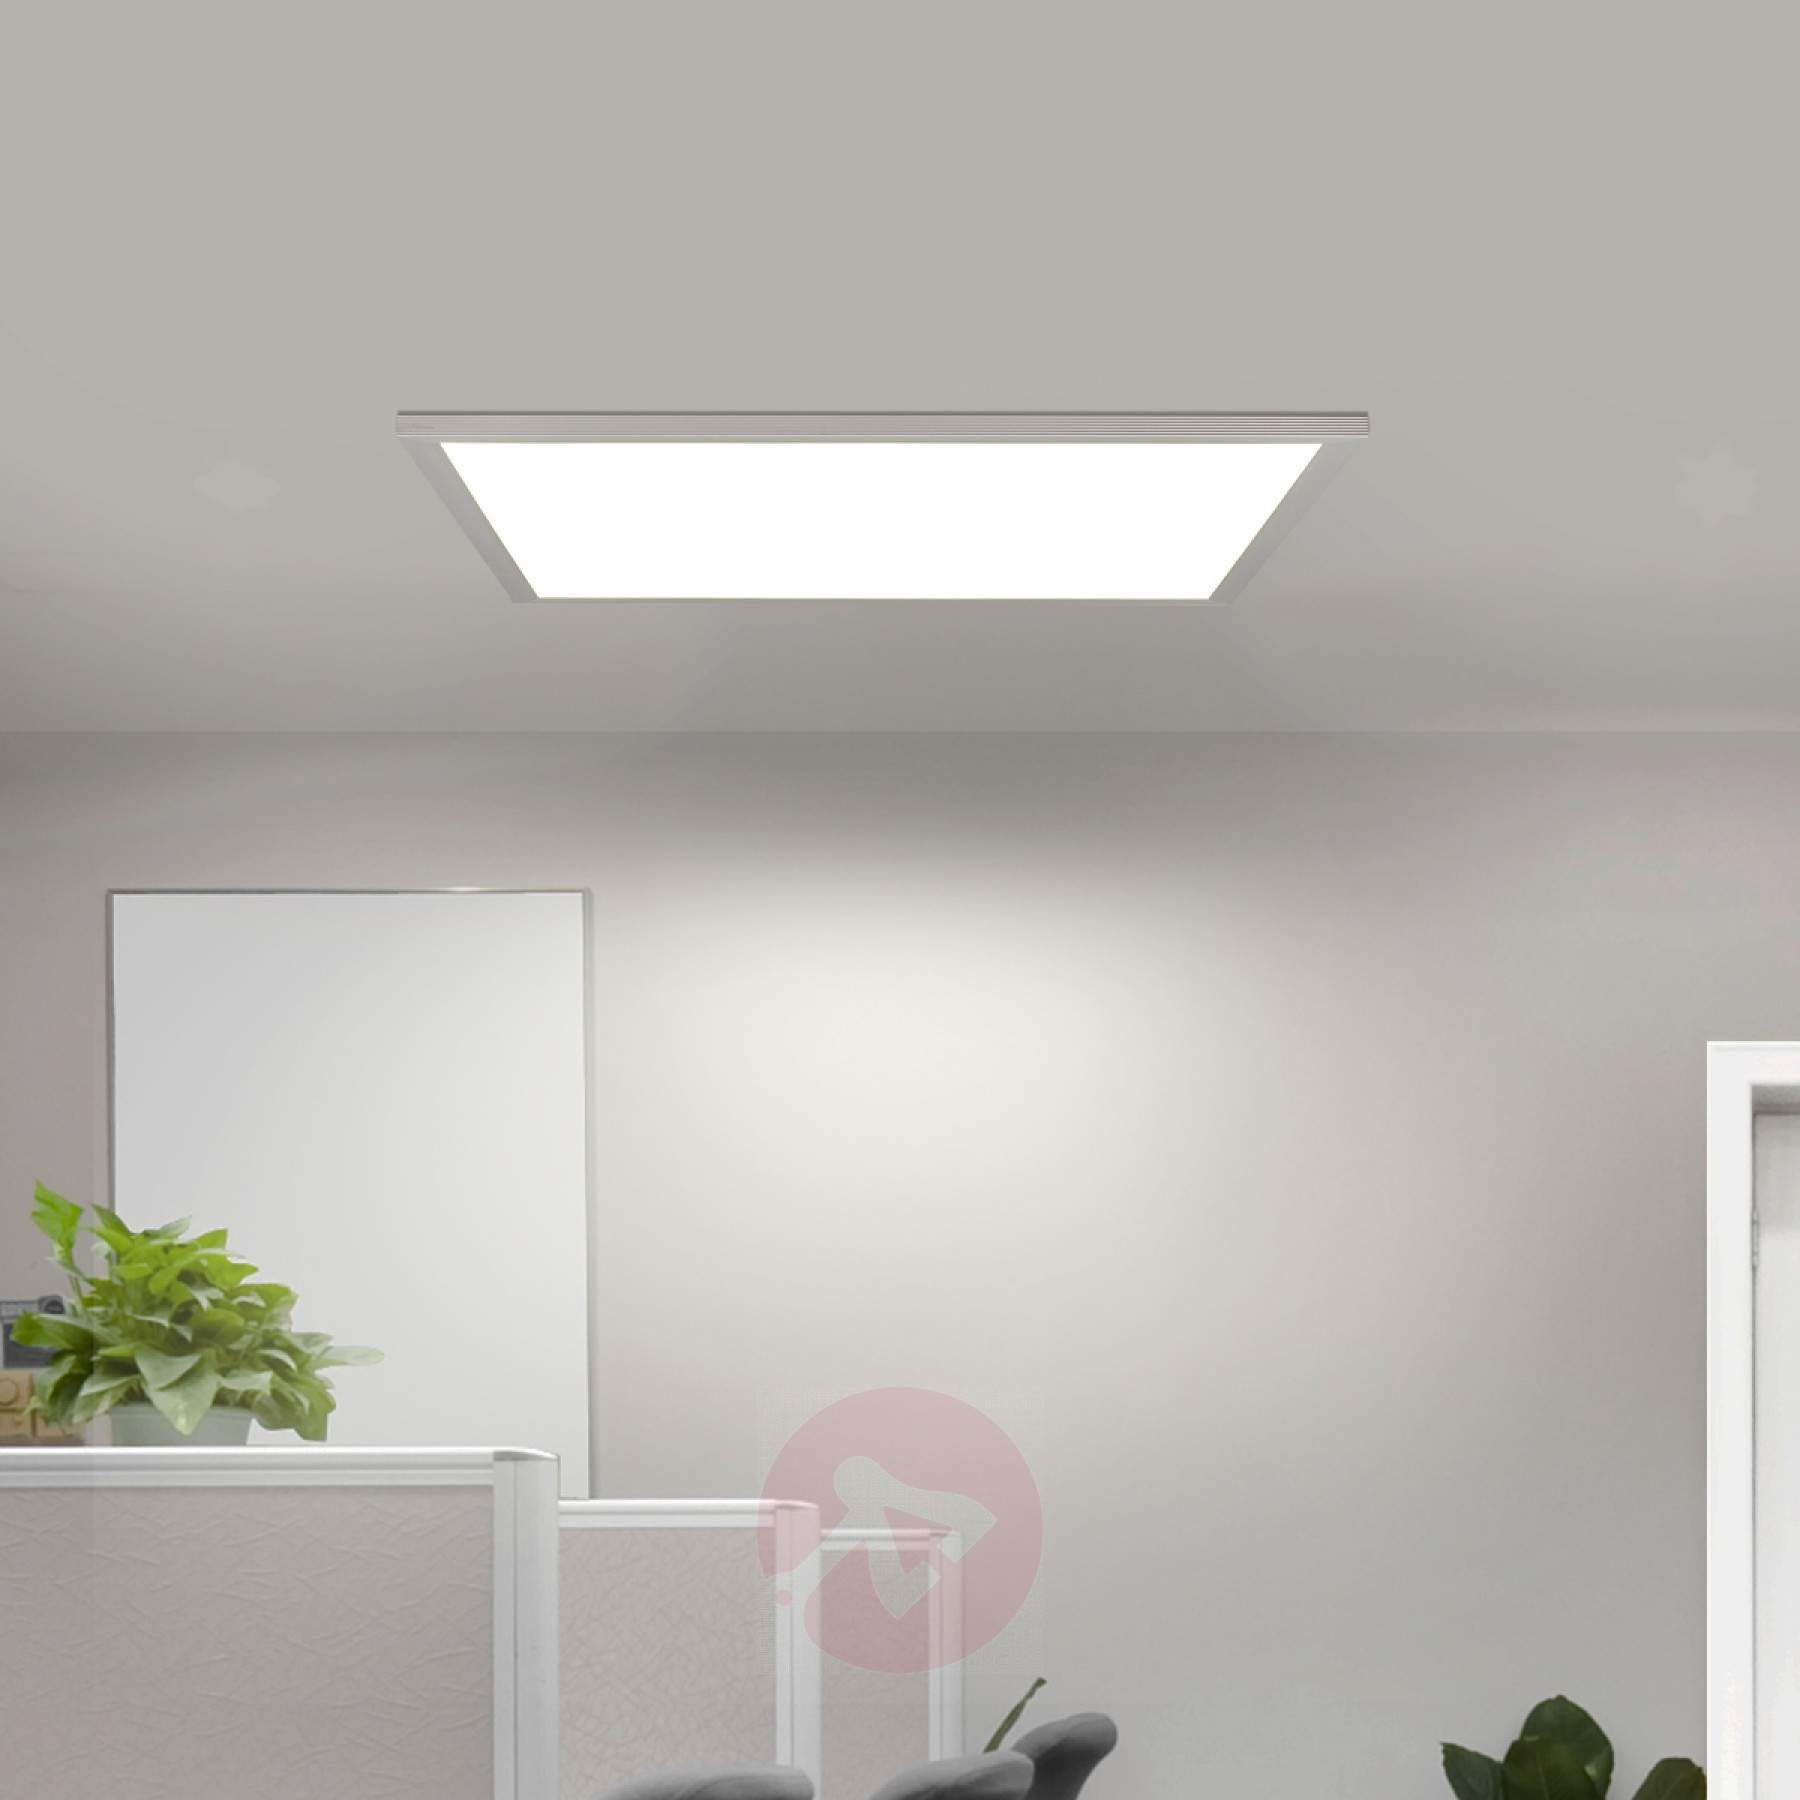 Led Panel All In One 62x62cm Mit Osram Leds Led Panel Verkleidung Led